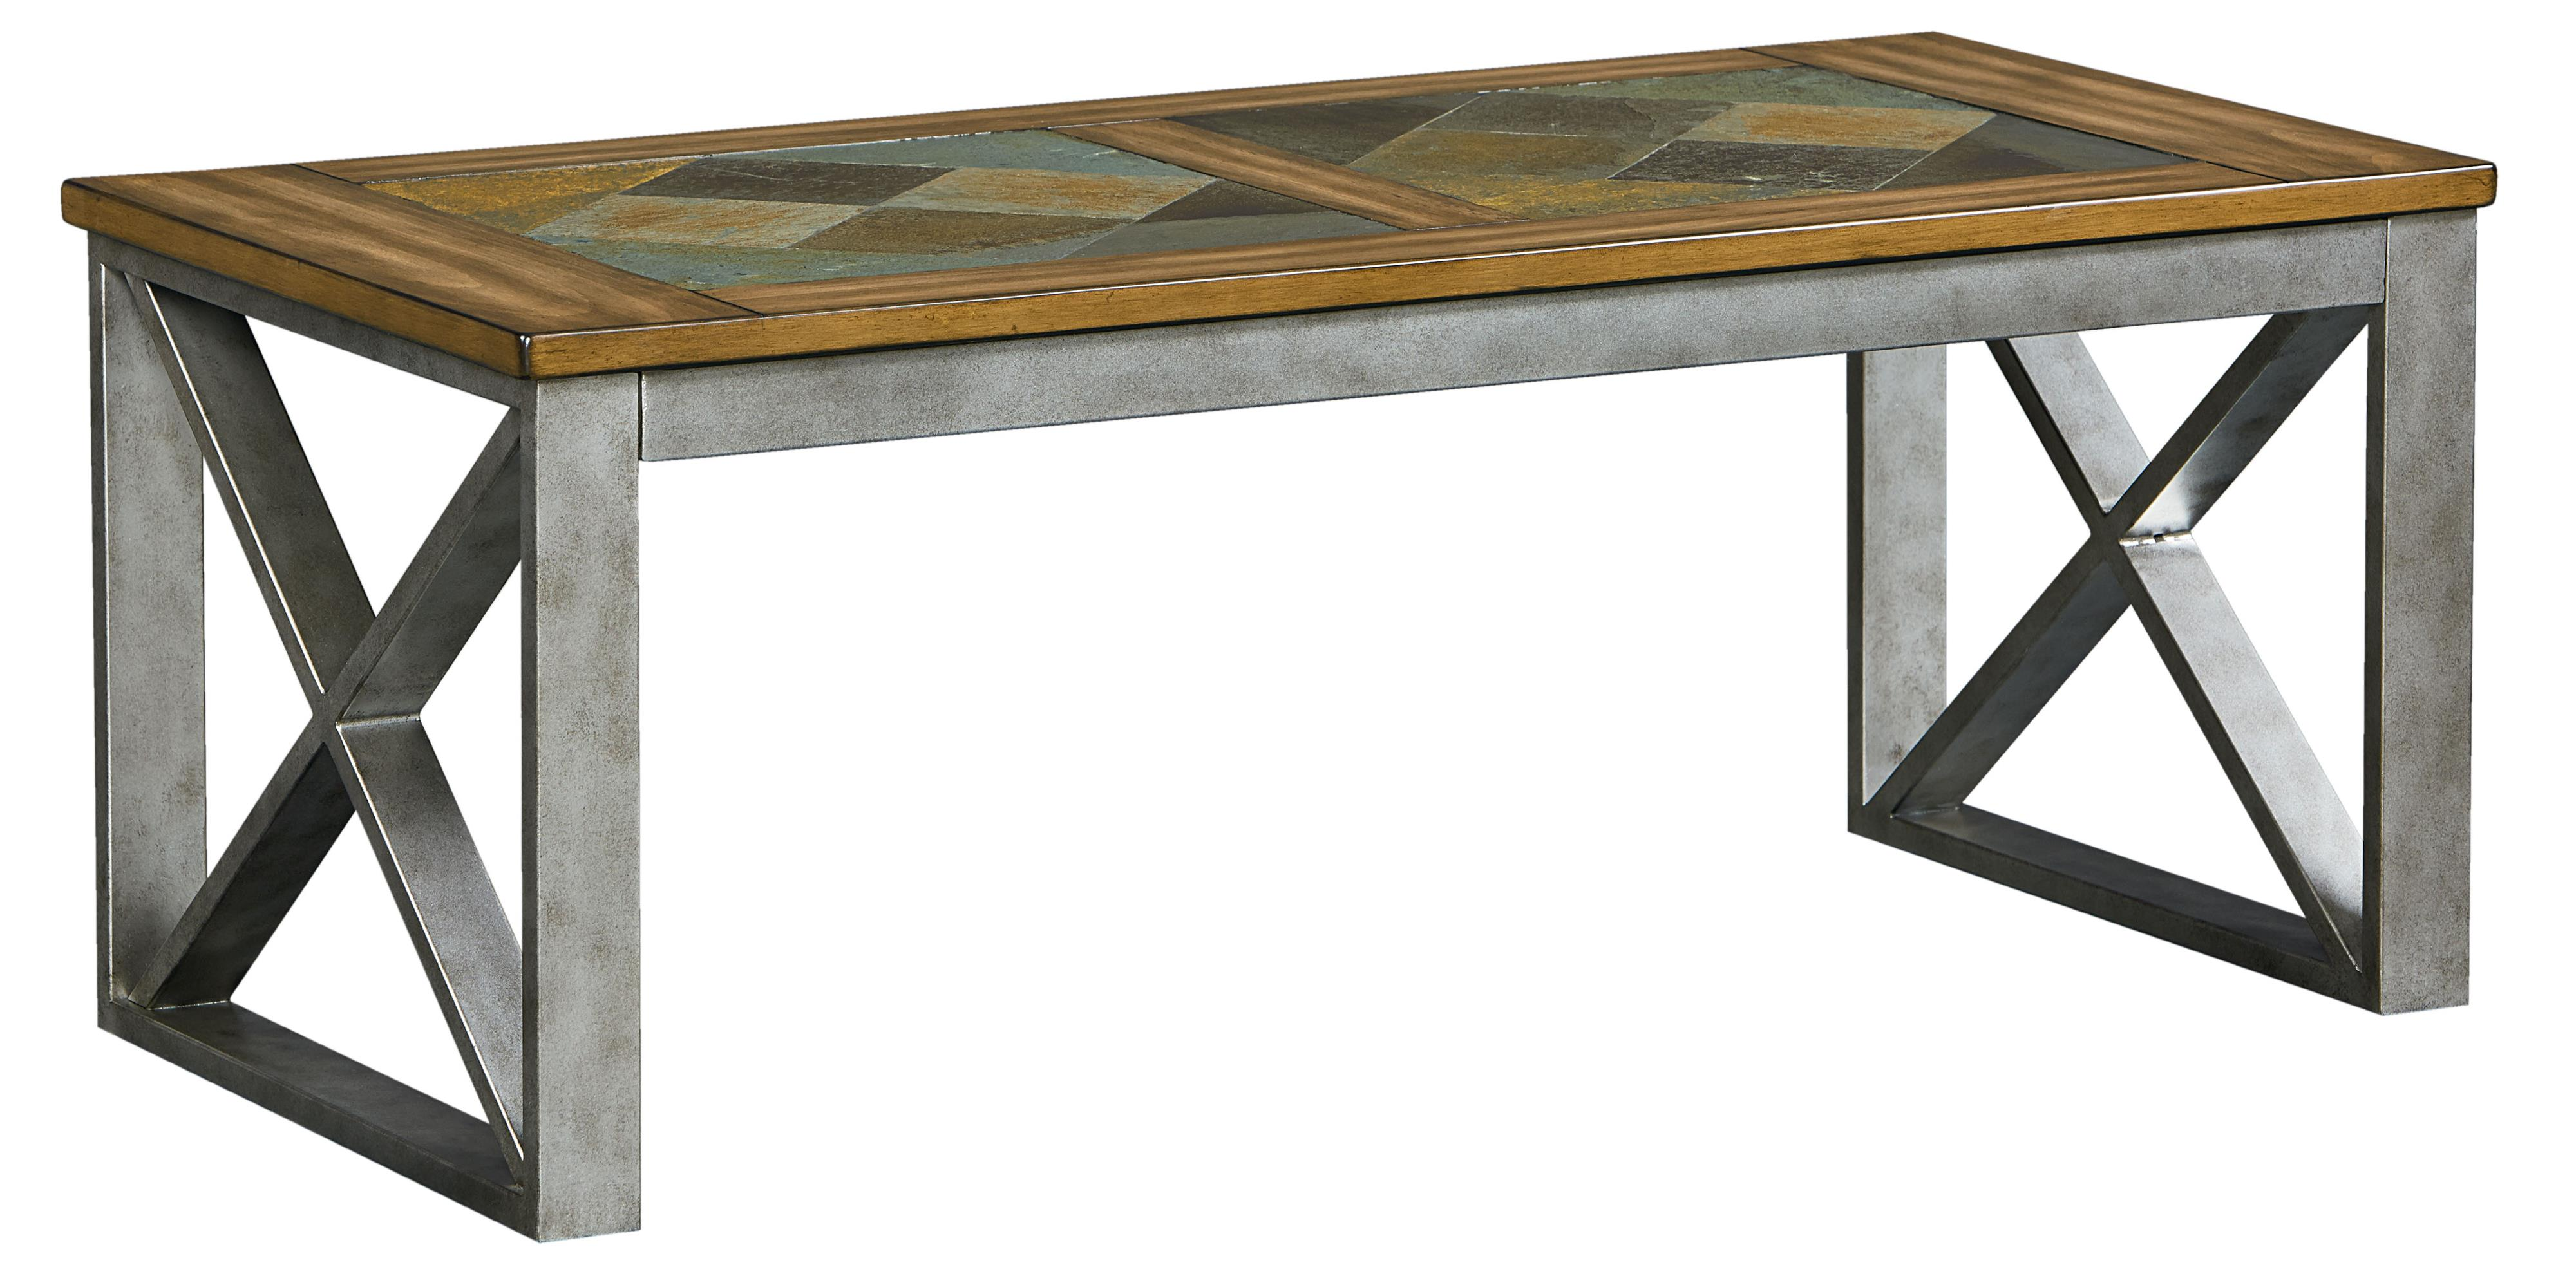 Standard Furniture Tessoro Cocktail Table                    - Item Number: 28891